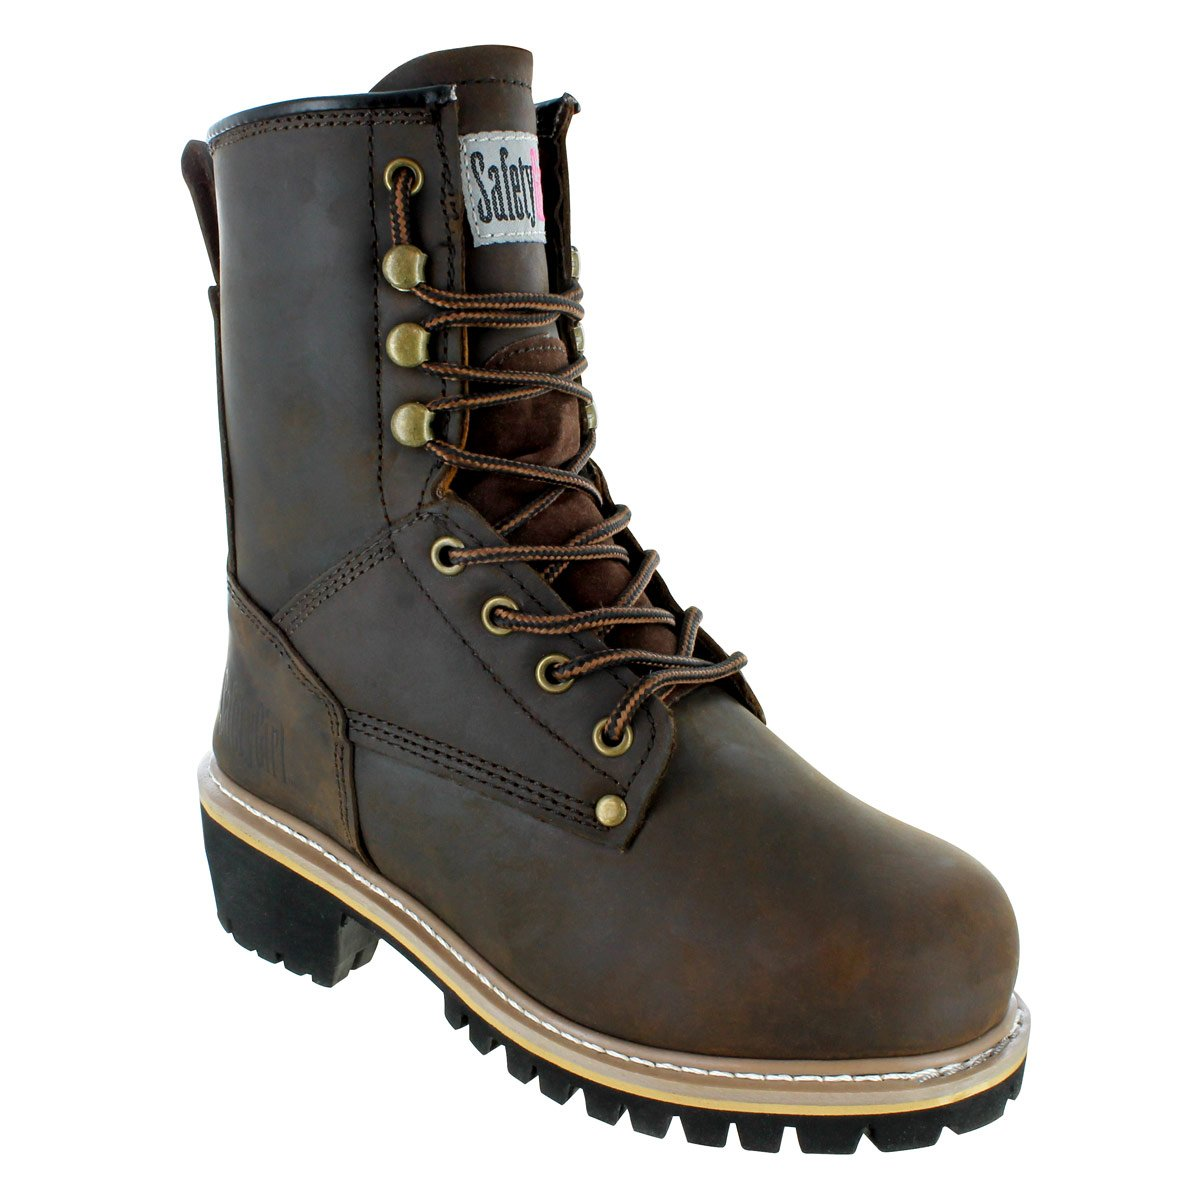 Safety Girl GS009-BRN-FT-8 Safety Girl Women's 8'' Logger Boot - Soft Toe 8, English, Capacity, Volume, Leather, 8, Brown ()